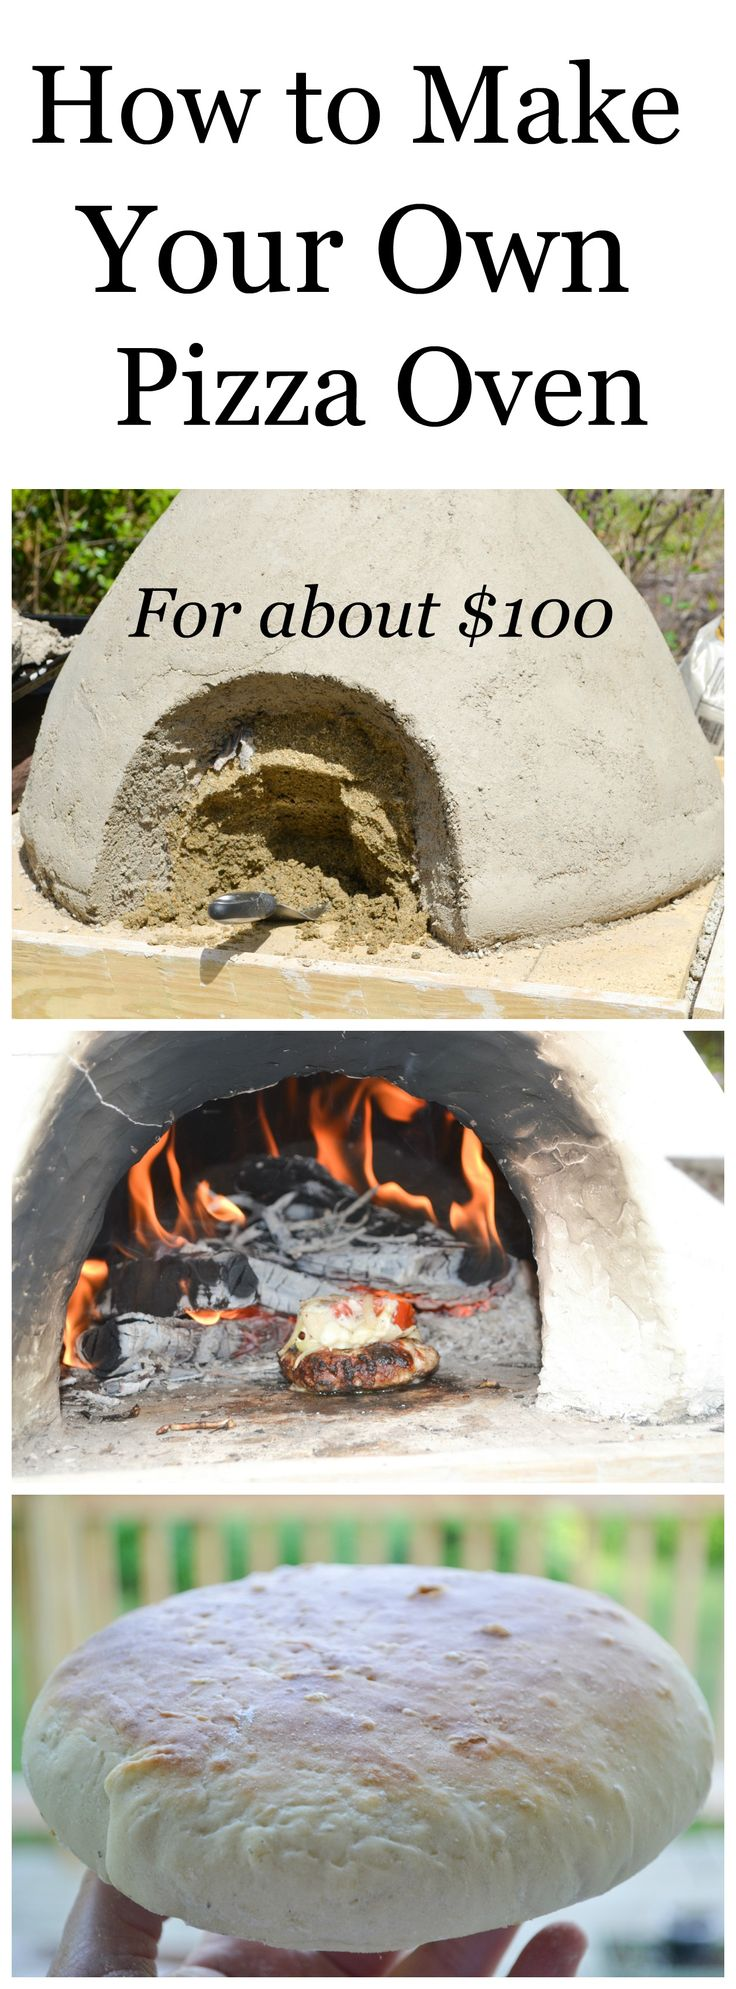 17 best ideas about diy pizza oven on pinterest for How to bread fish